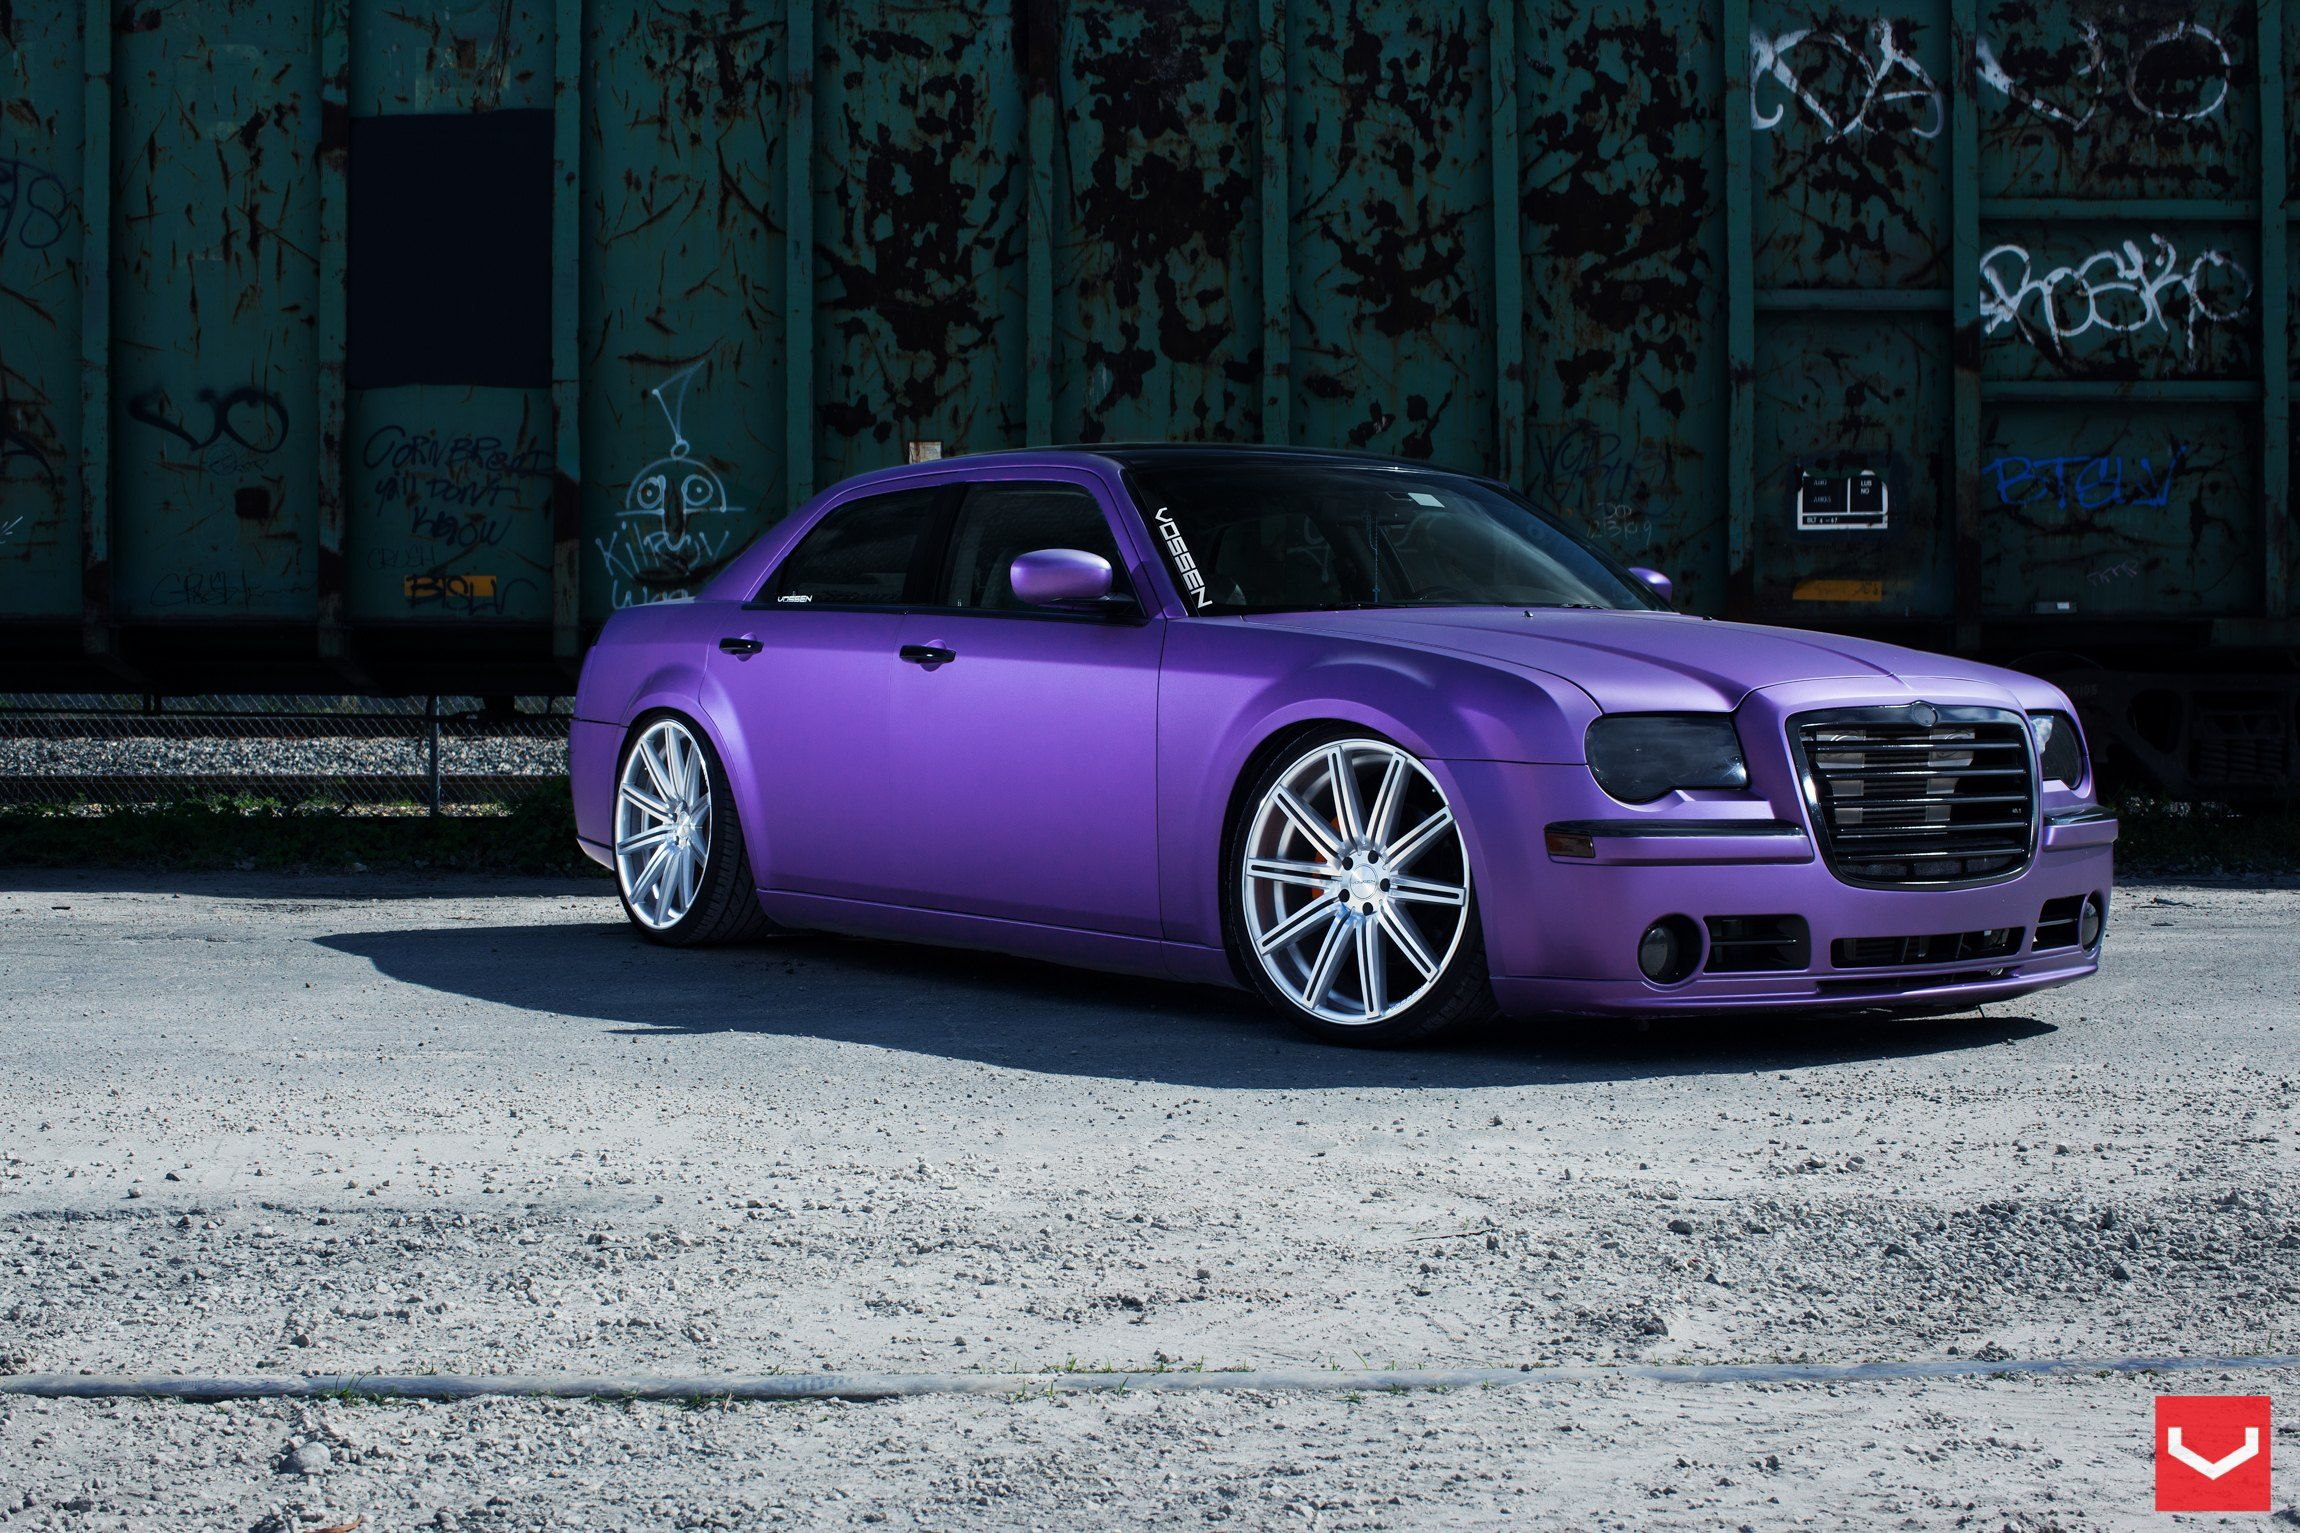 Matte Plum Crazy Purple Chrysler 300 Customized to Impress